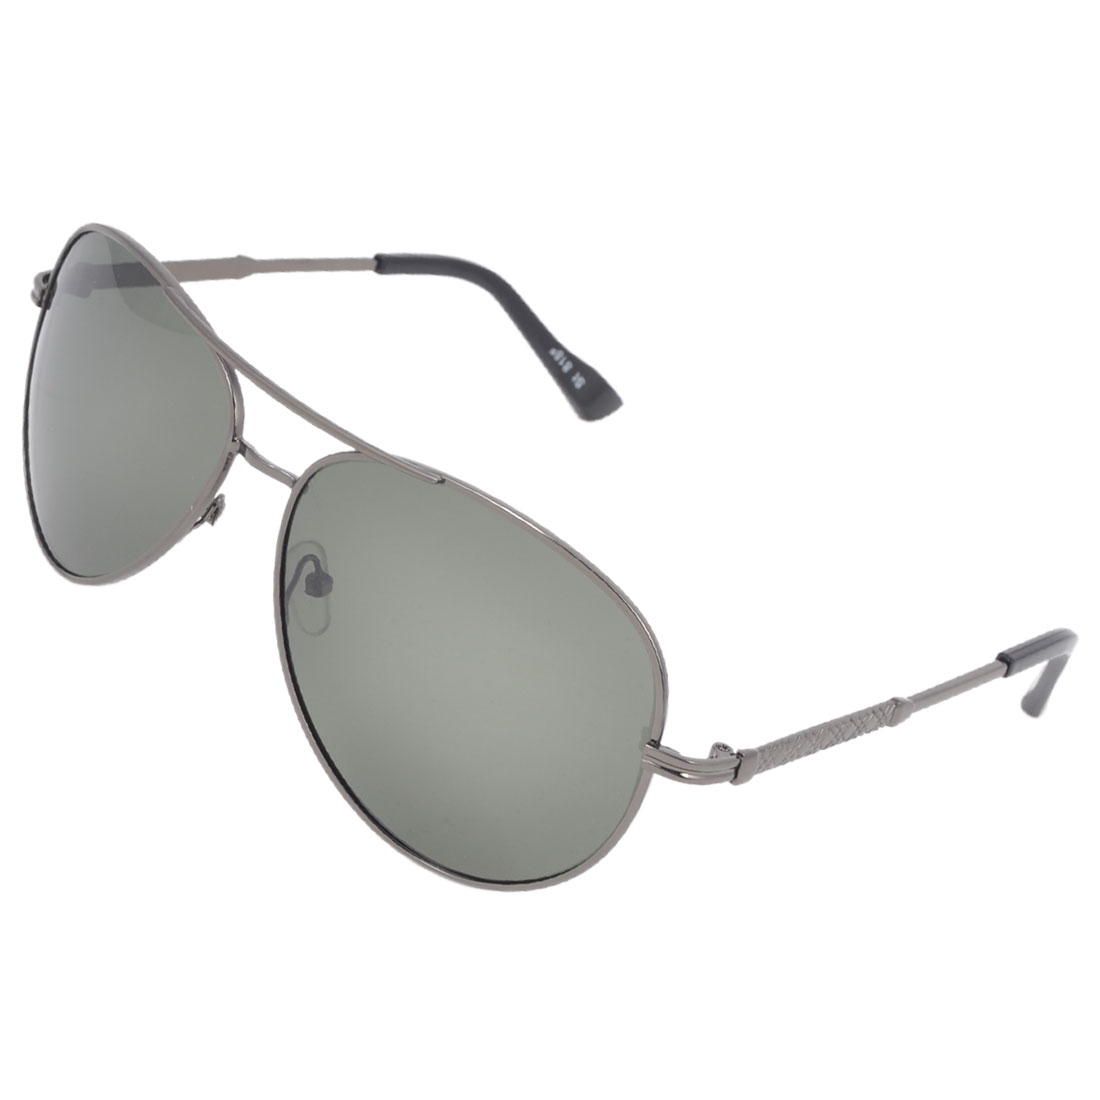 Man Double Bridge Metal Full Rim Gray Green Teardrop Lens Polarized Sun Glasses